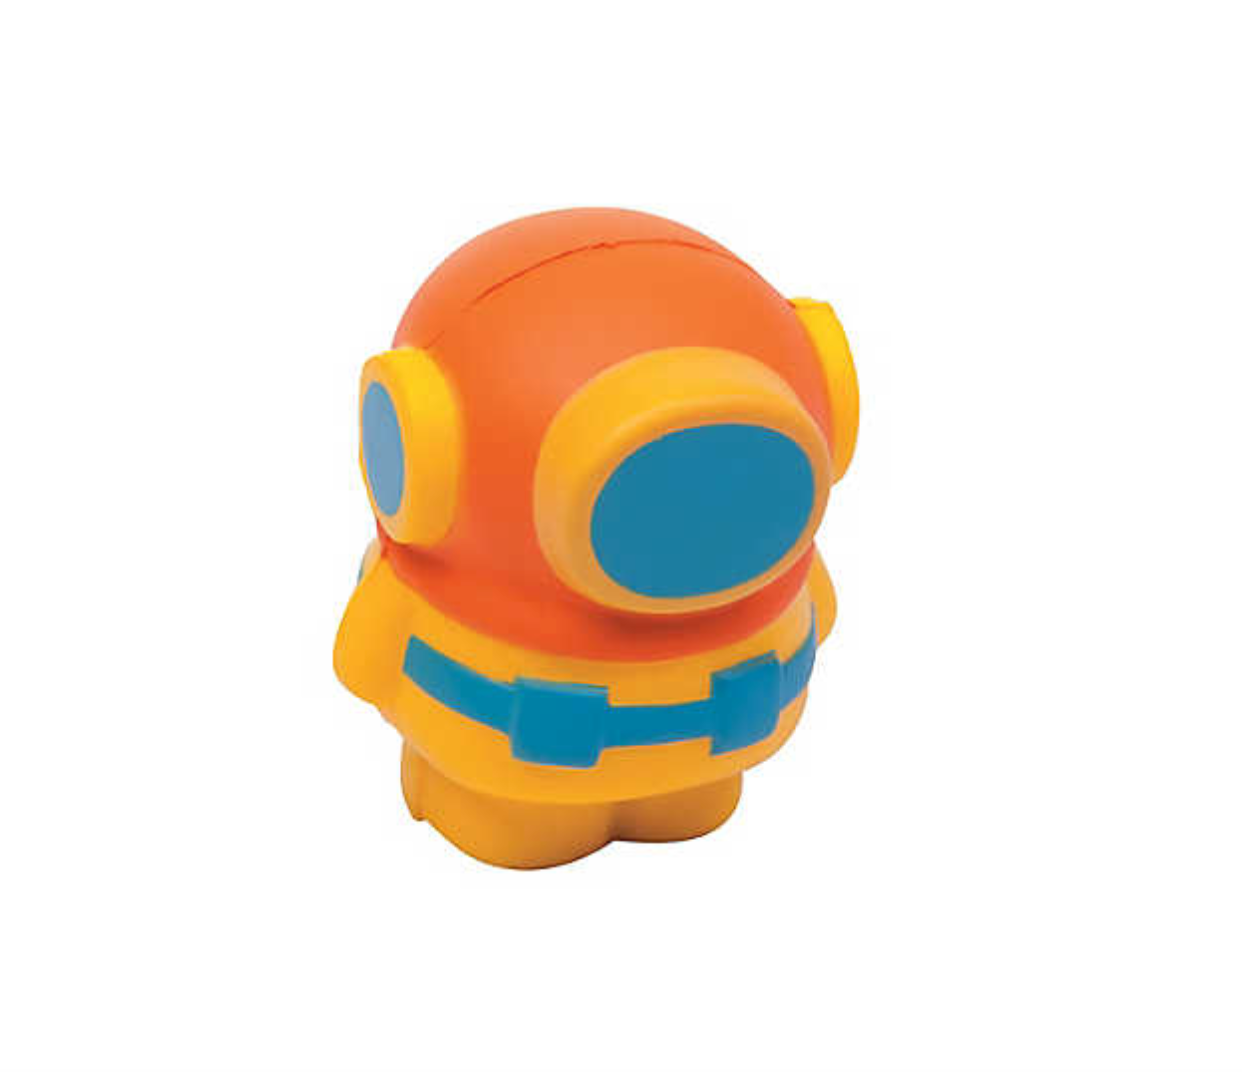 Naval Diver Stress Toy